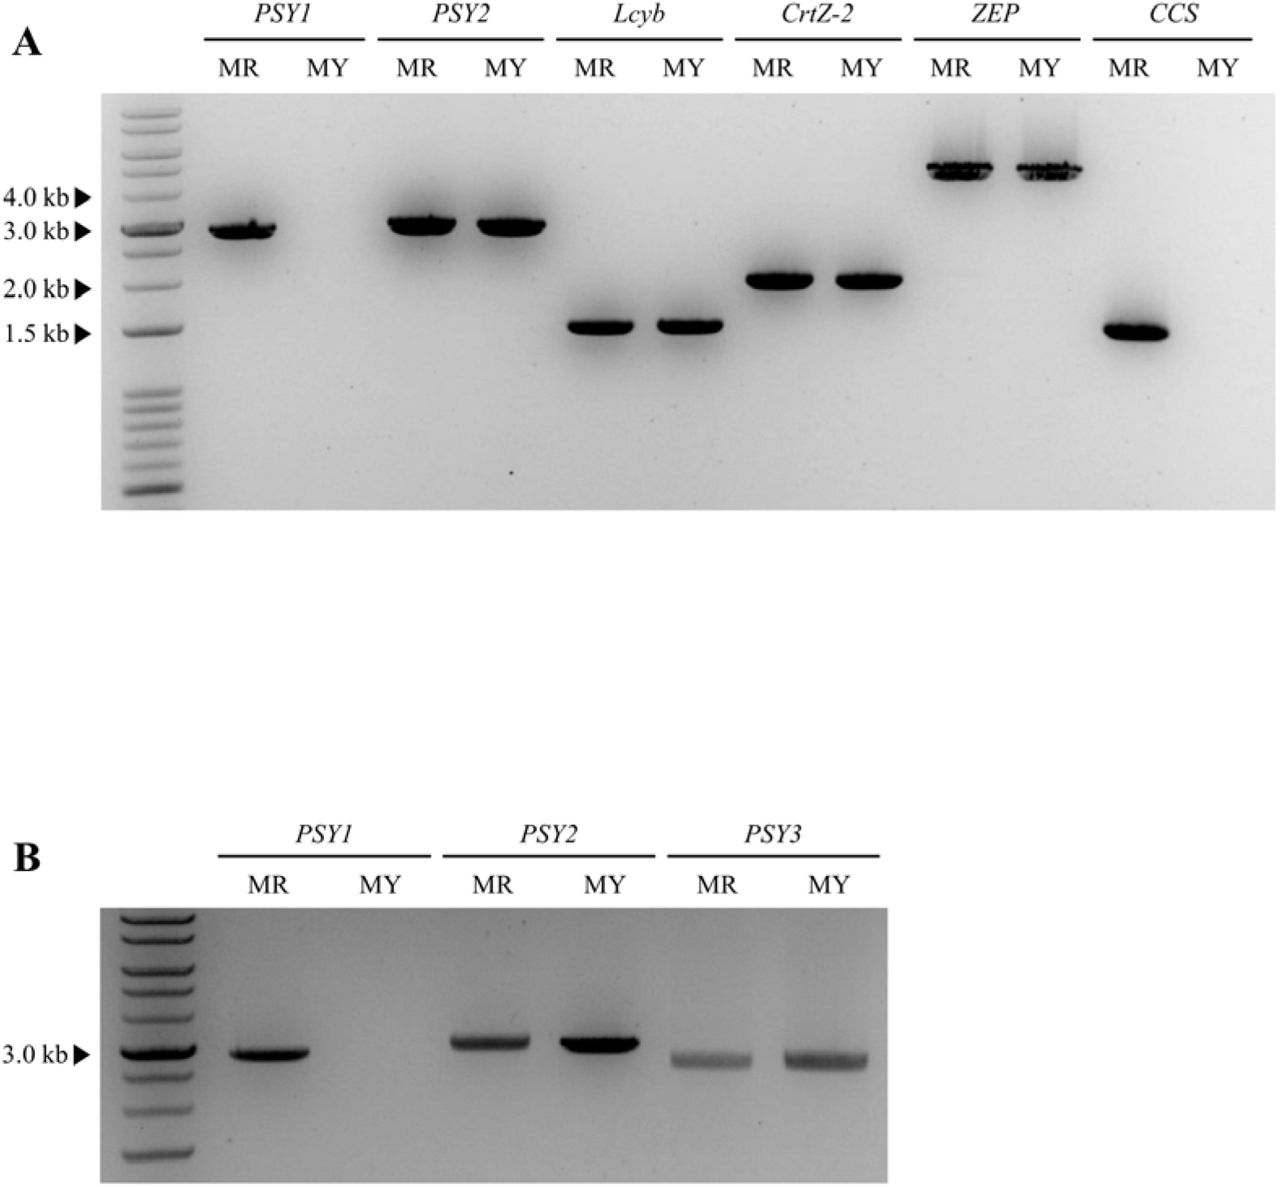 Polymorphism survey of the carotenoid biosynthetic genes. (A) gDNA amplification of six carotenoid biosynthetic genes using PCR. Primers were design to amplify the full length of each gene. From the two genotypes, the expected amplicon sizes were obtained for PSY2, Lcyb, CrtZ-2, and ZEP . No amplicon was obtained for PSY1 and CCS in MY. (B) gDNA PCR amplification of the PSY genes. A difference in the amplification pattern between MY and MR was only detected for PSY1 , for which no amplicon was obtained from MY.